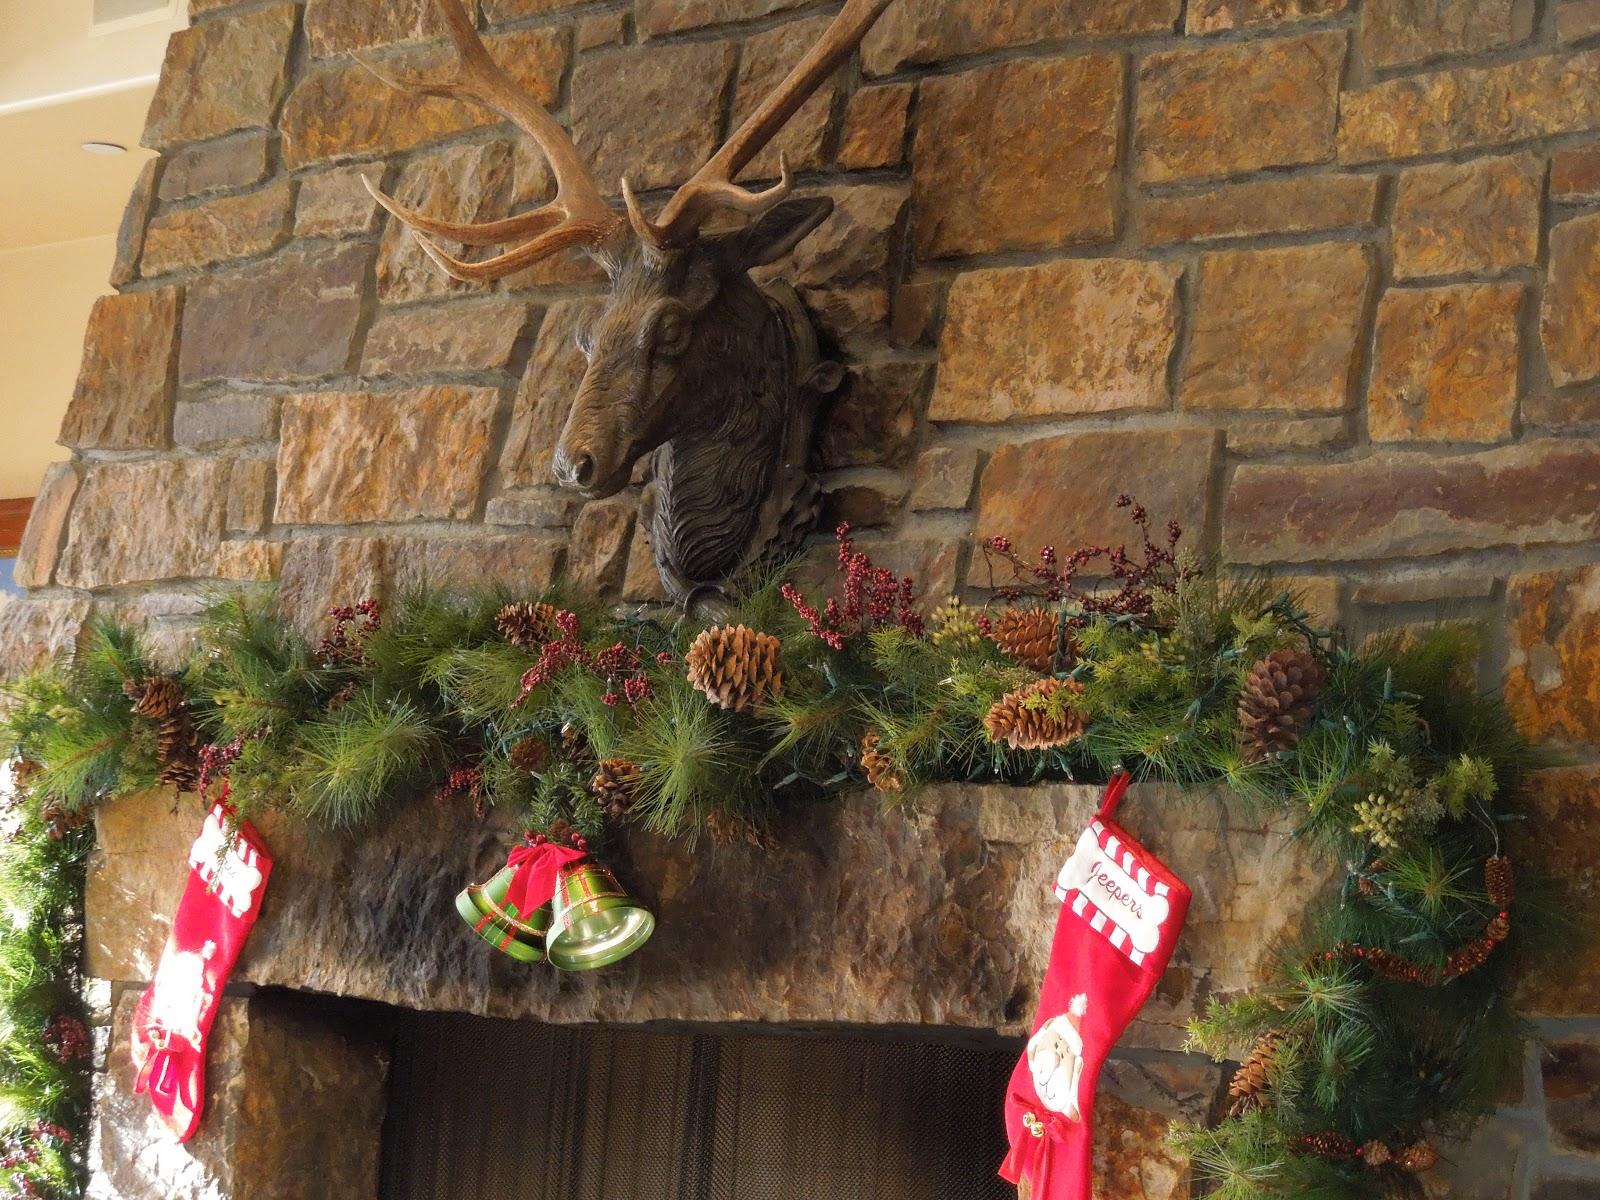 Tivoli Lodge Vail The French Tangerine Antlers And Shopping In Vail